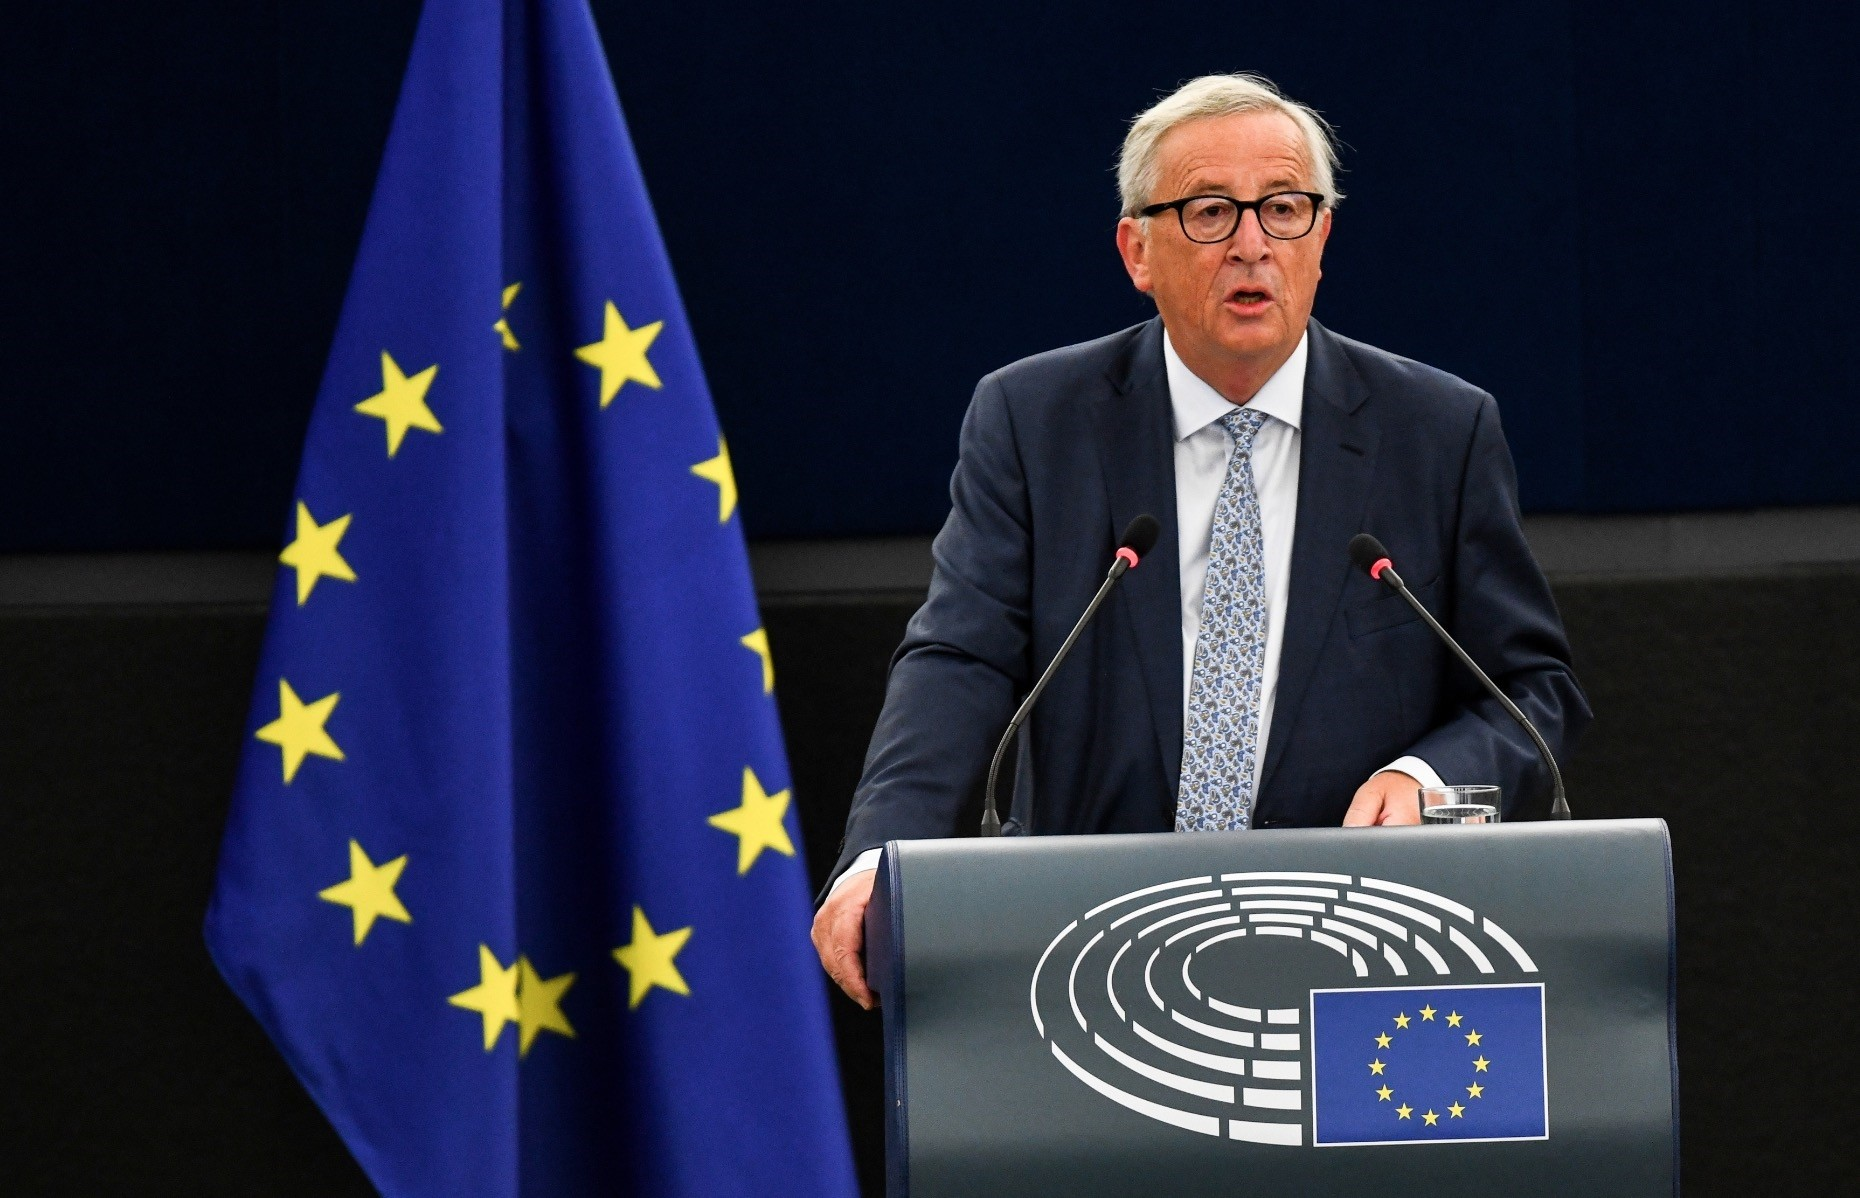 President of the European Commission Jean-Claude Juncker delivers the annual State of the Union speech in the European Parliament, Strasbourg, Sept. 12.